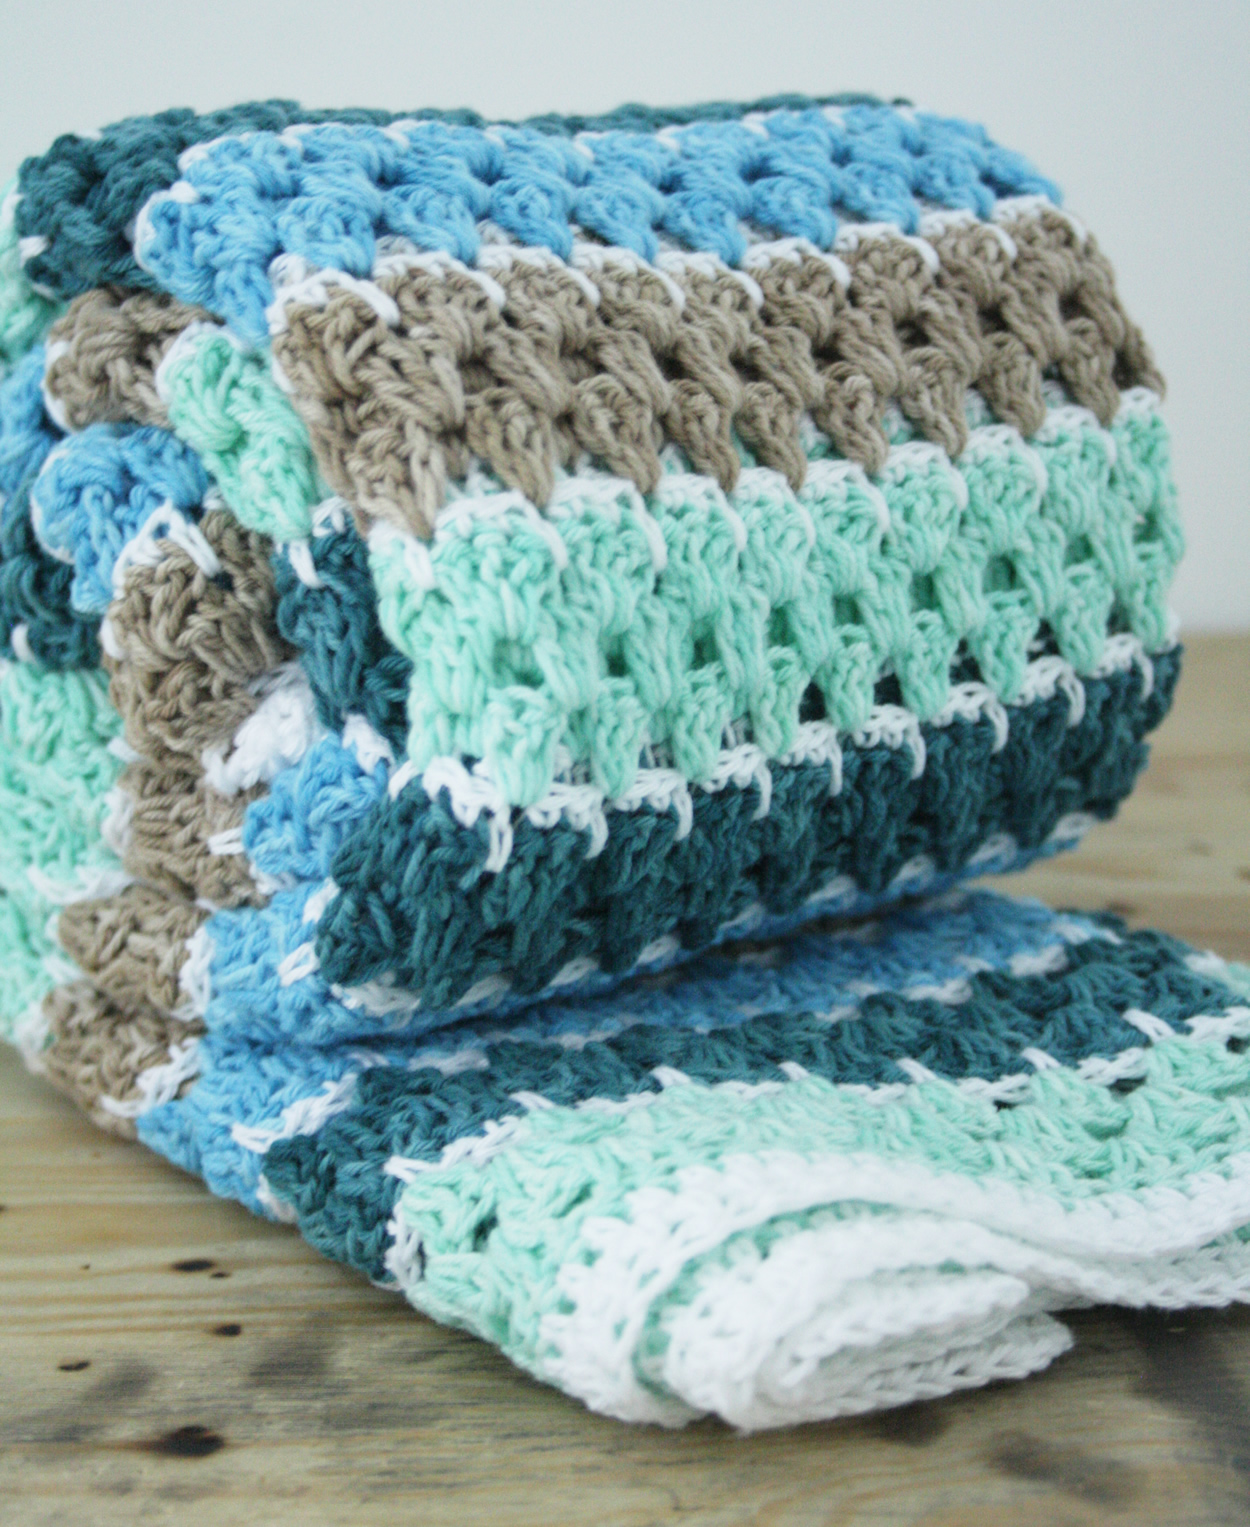 Scheepjes Sunkissed, crochet blanket | Spike stitch blanket, crochet pattern by Happy in Red